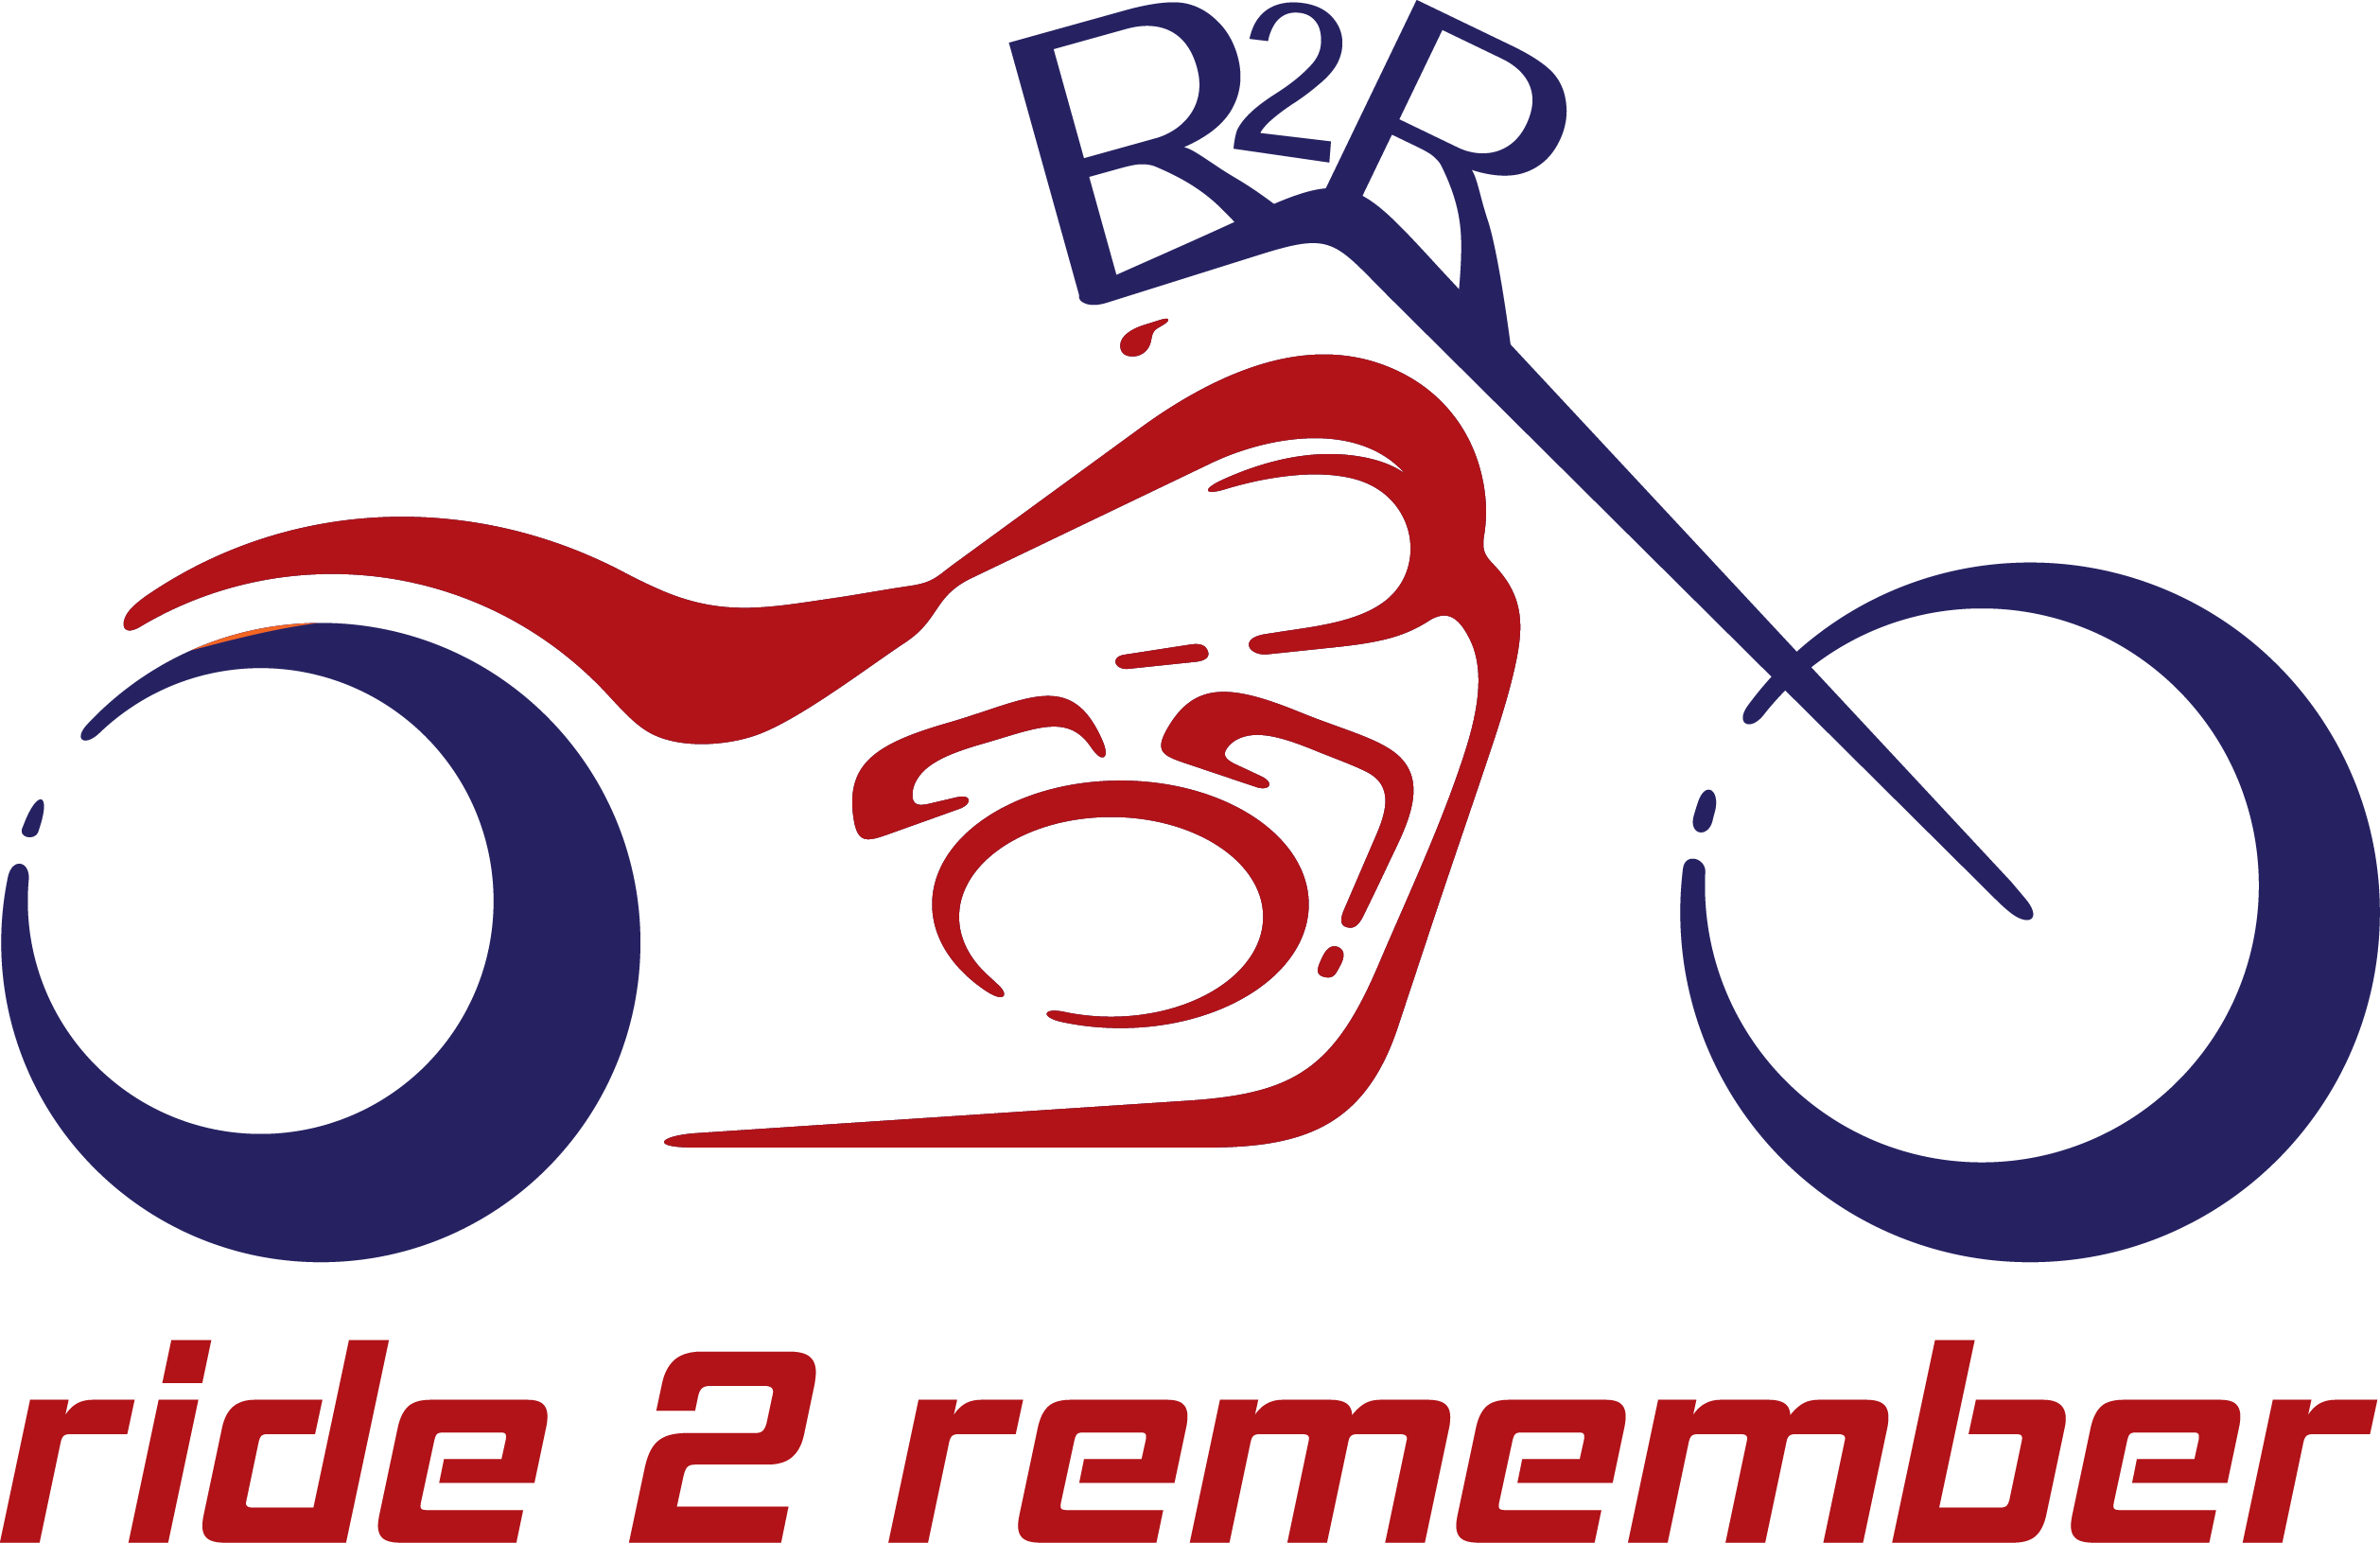 Ride 2 Remember